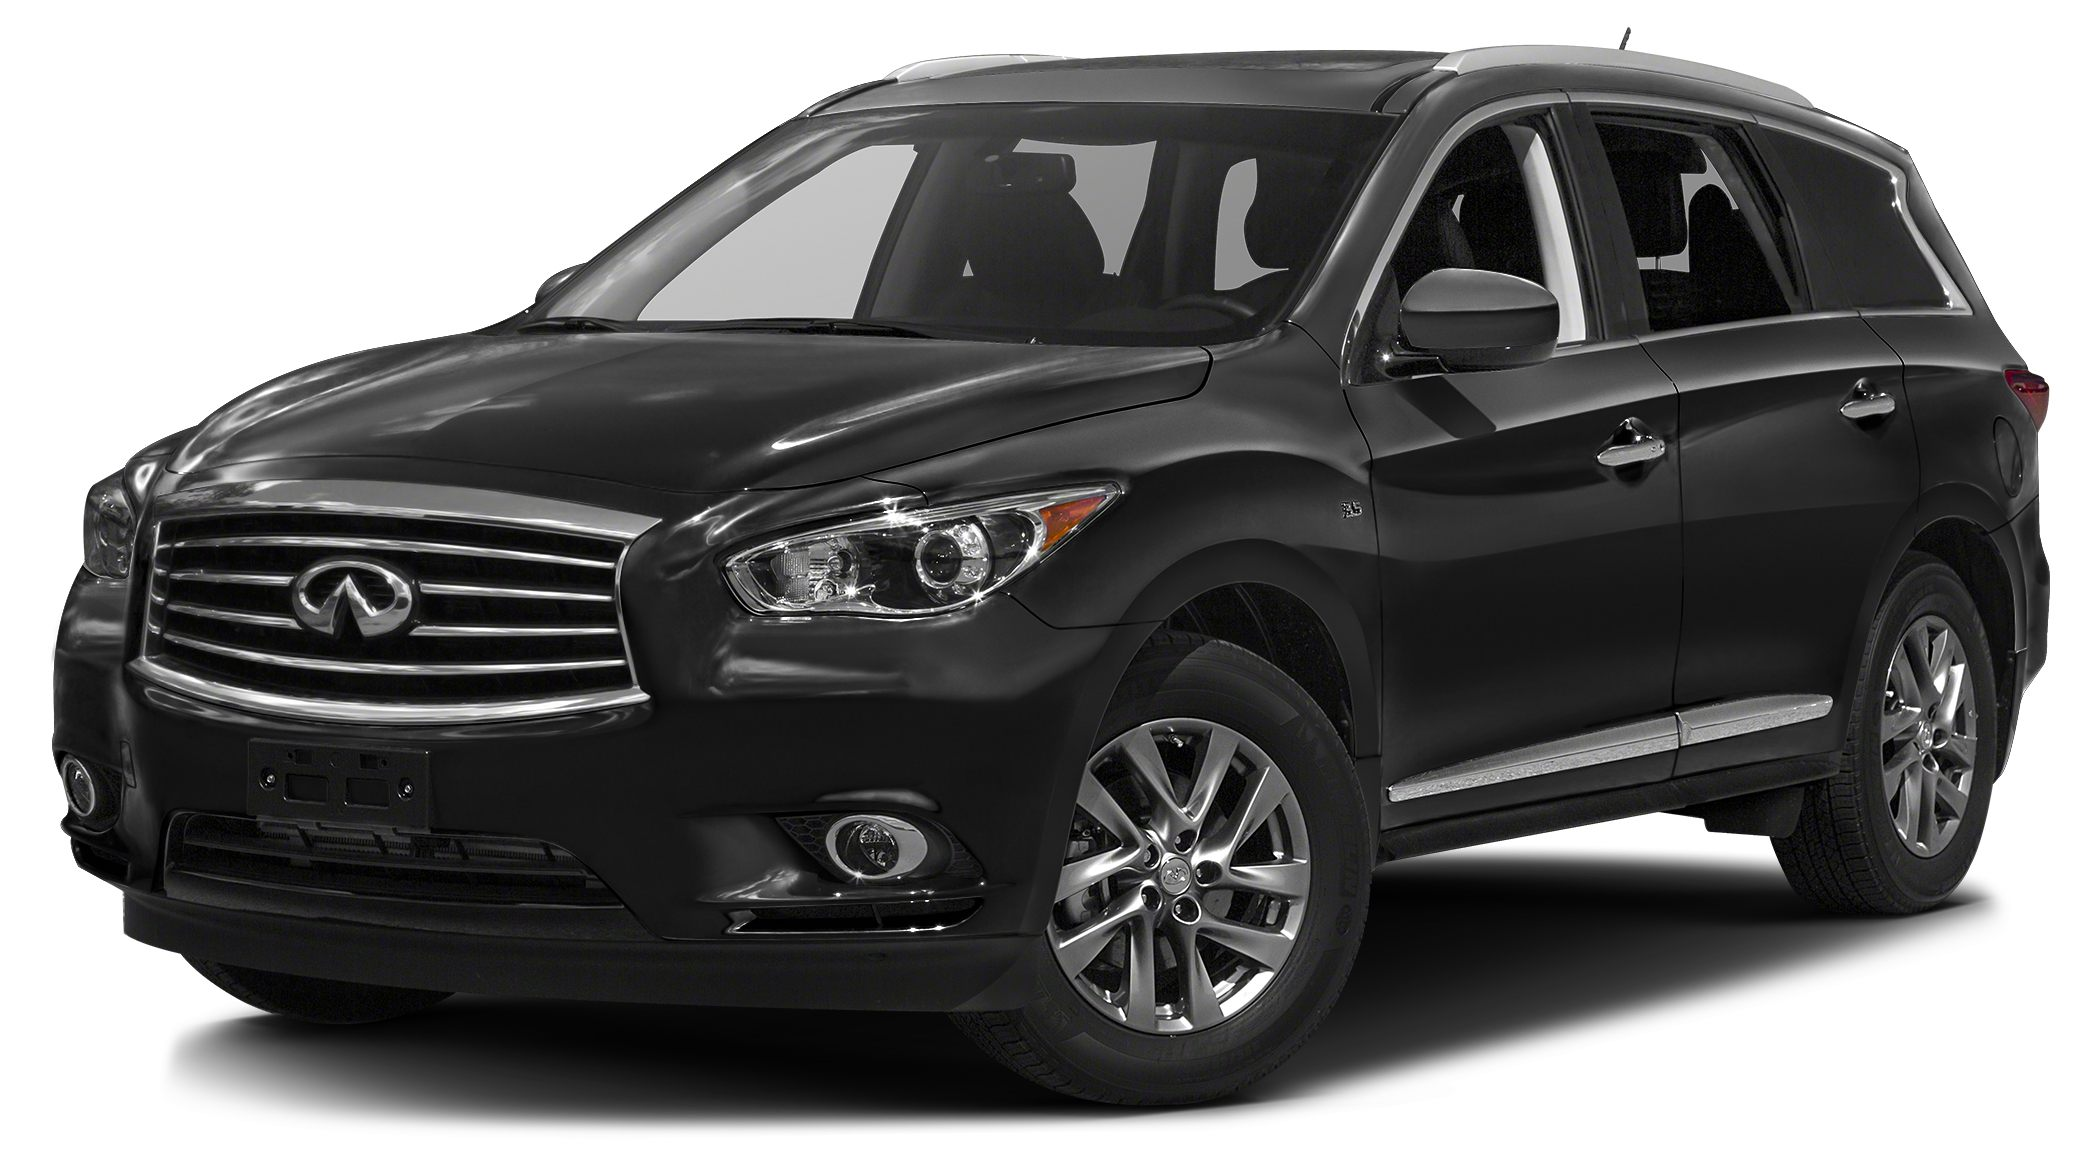 2014 Infiniti QX60 Base CARFAX 1-Owner ONLY 29025 Miles FUEL EFFICIENT 26 MPG Hwy20 MPG City